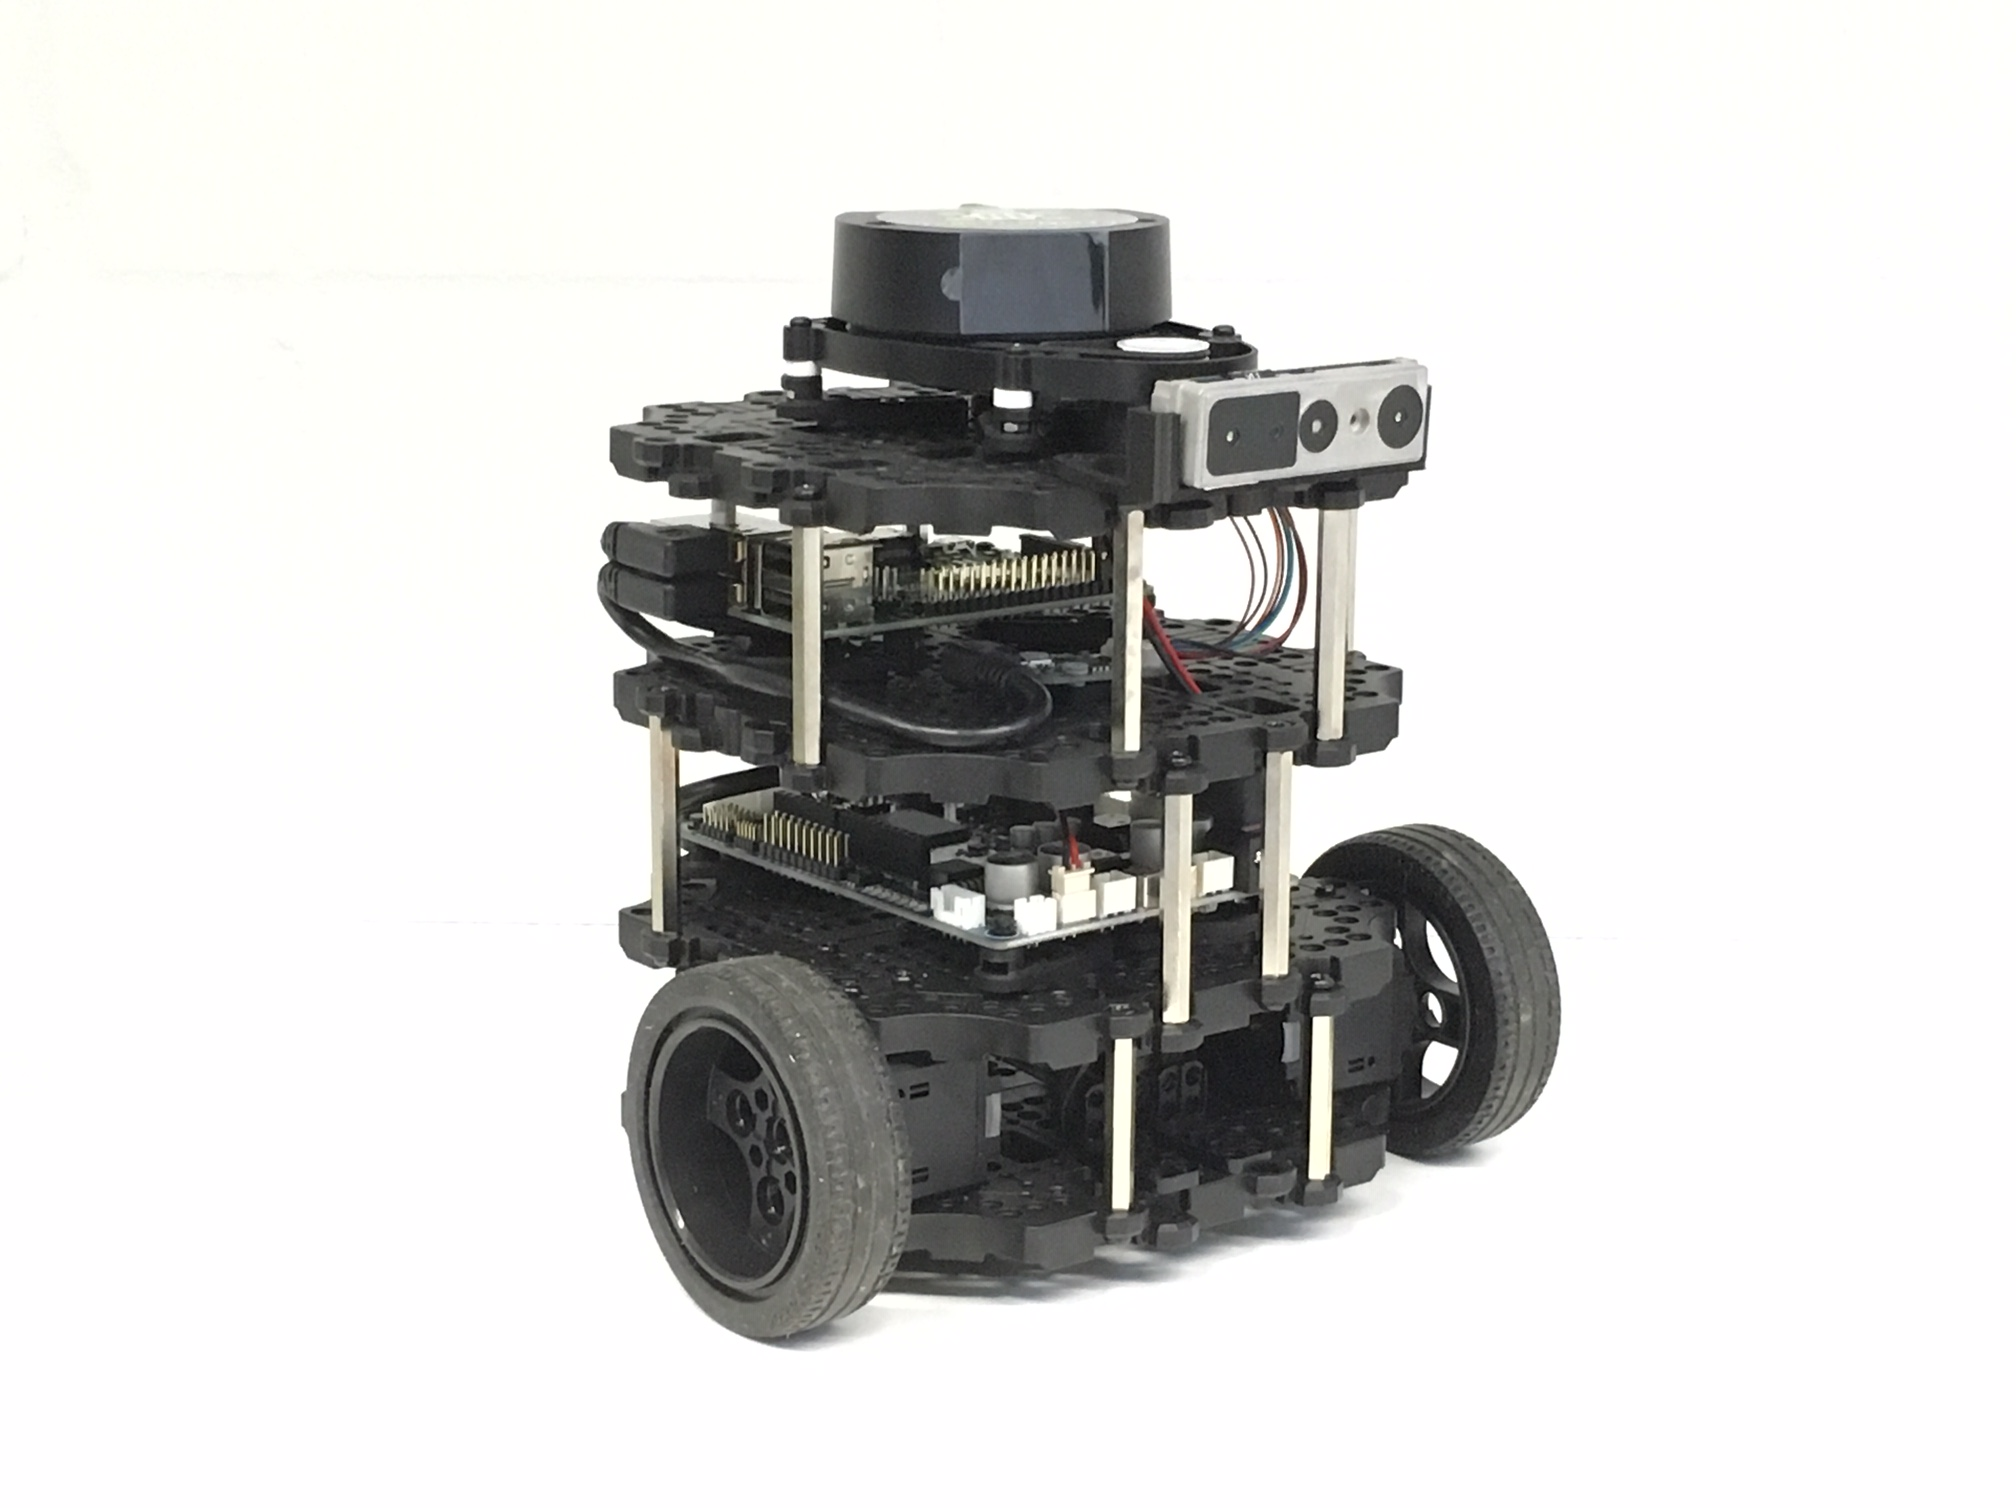 Turtlebot3 3D-SLAM